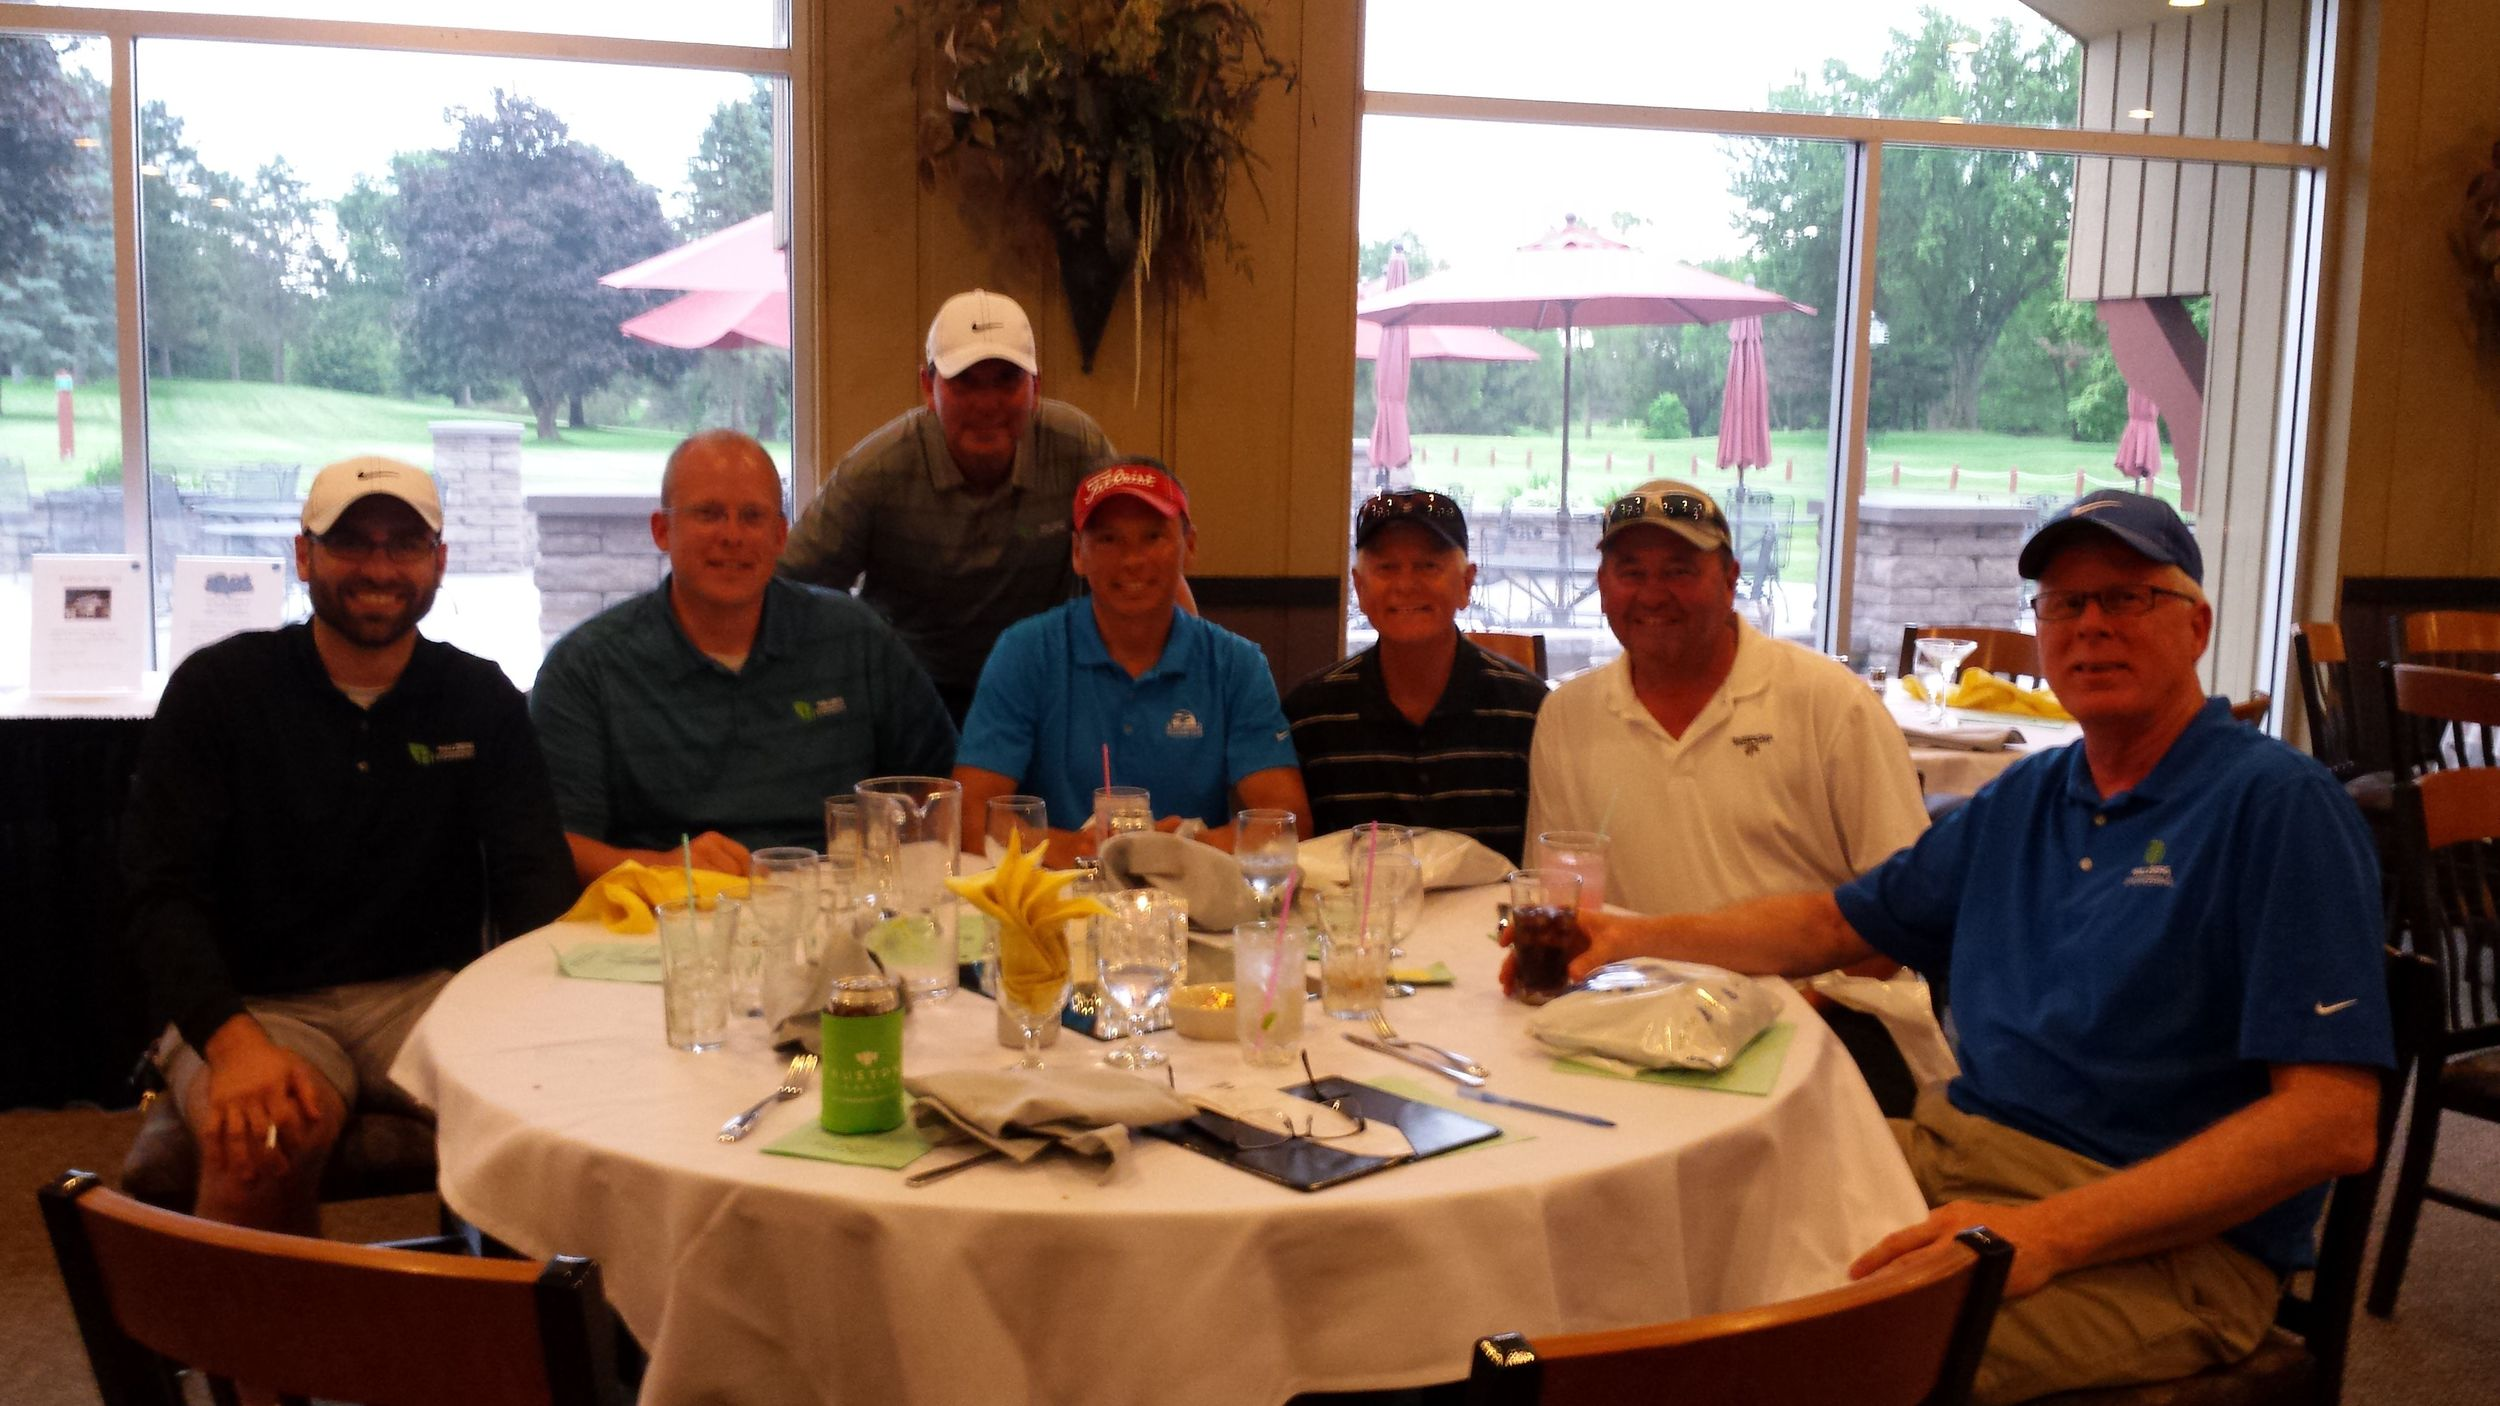 916 golf outing pic 2015.jpg